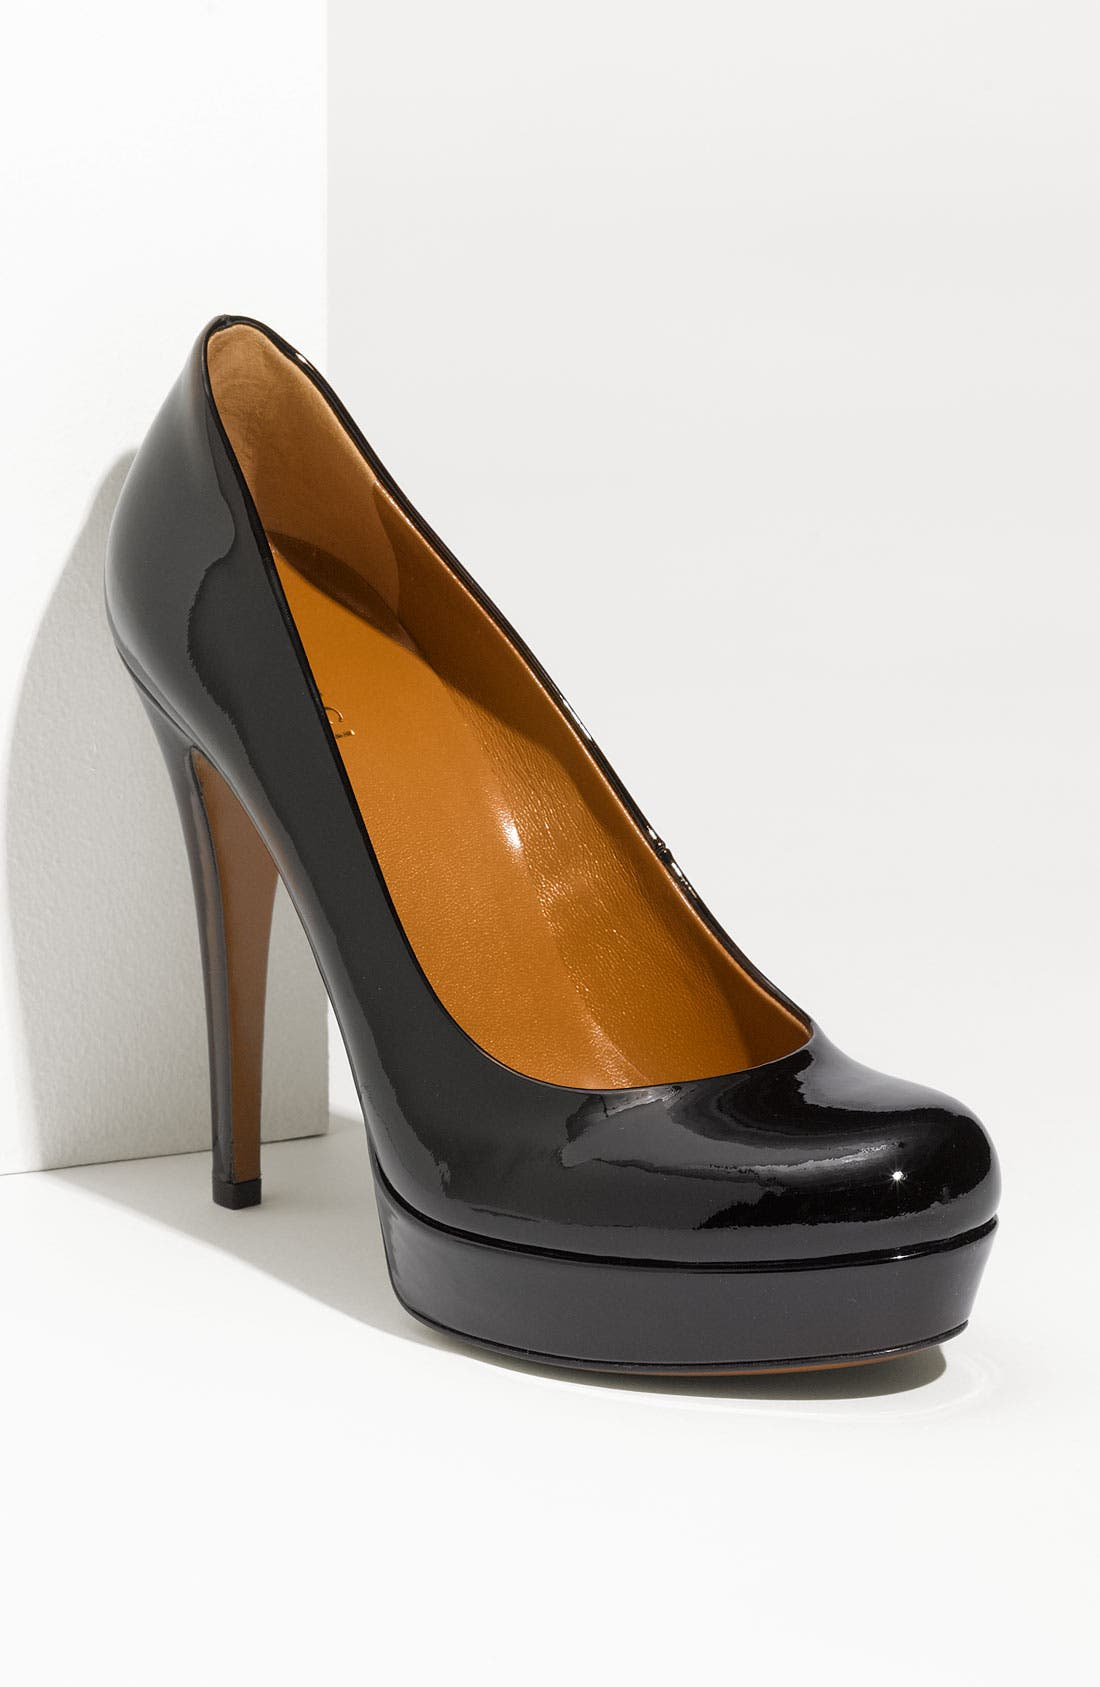 Alternate Image 1 Selected - Gucci 'Betty' Platform Pump